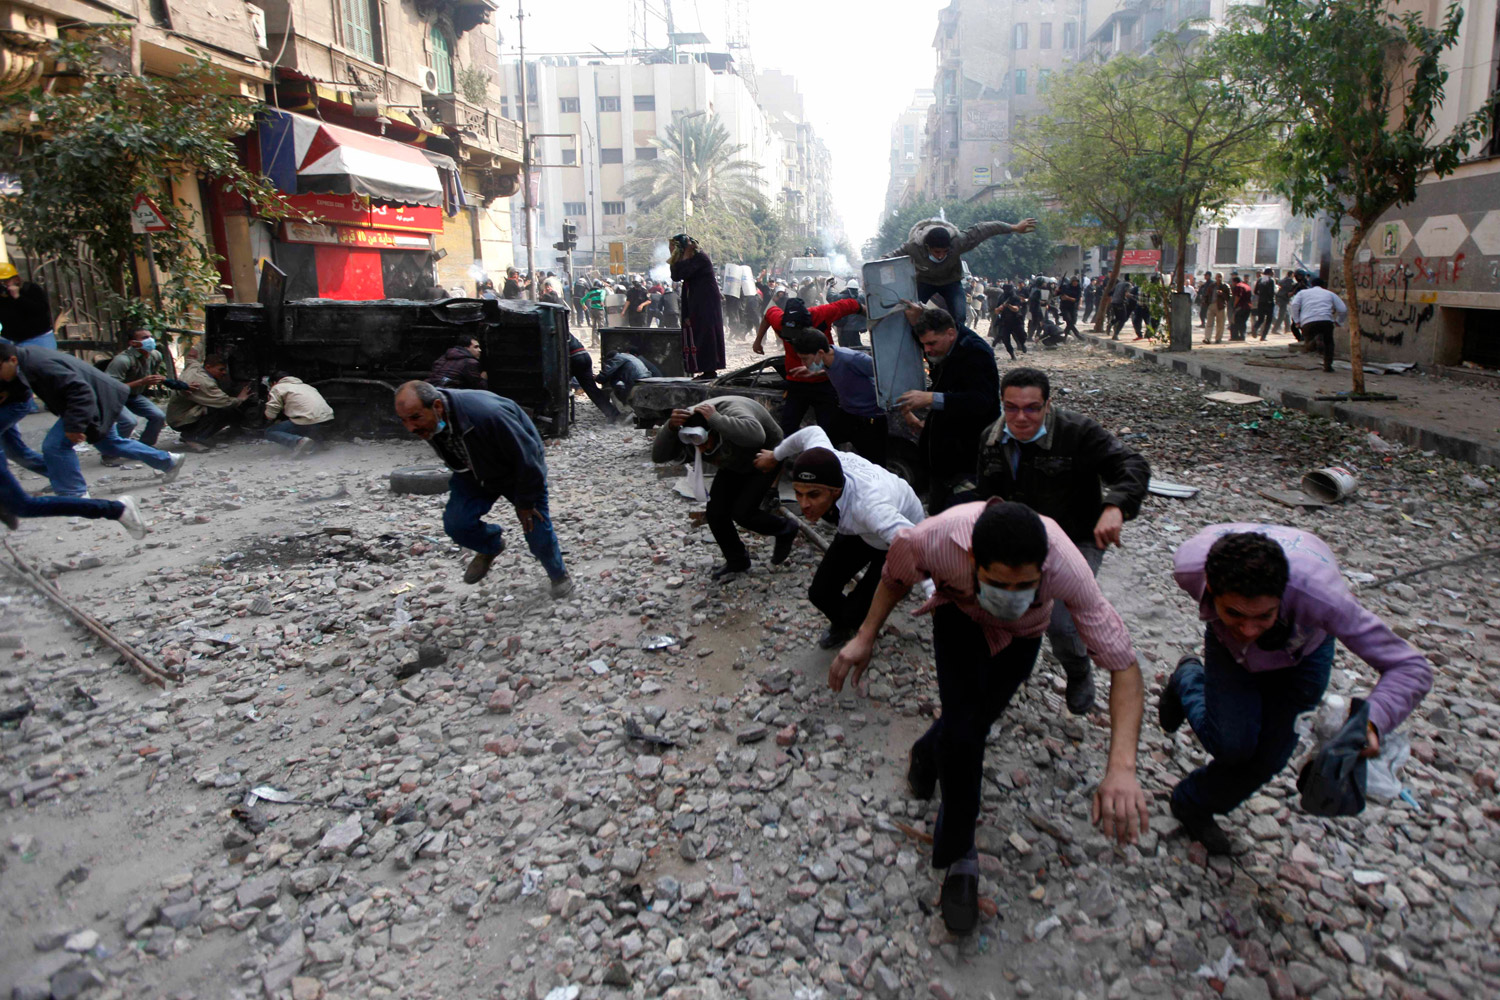 November 22, 2011. Protesters run for cover during clashes with the Egyptian riot police near Tahrir square in Cairo, Egypt.